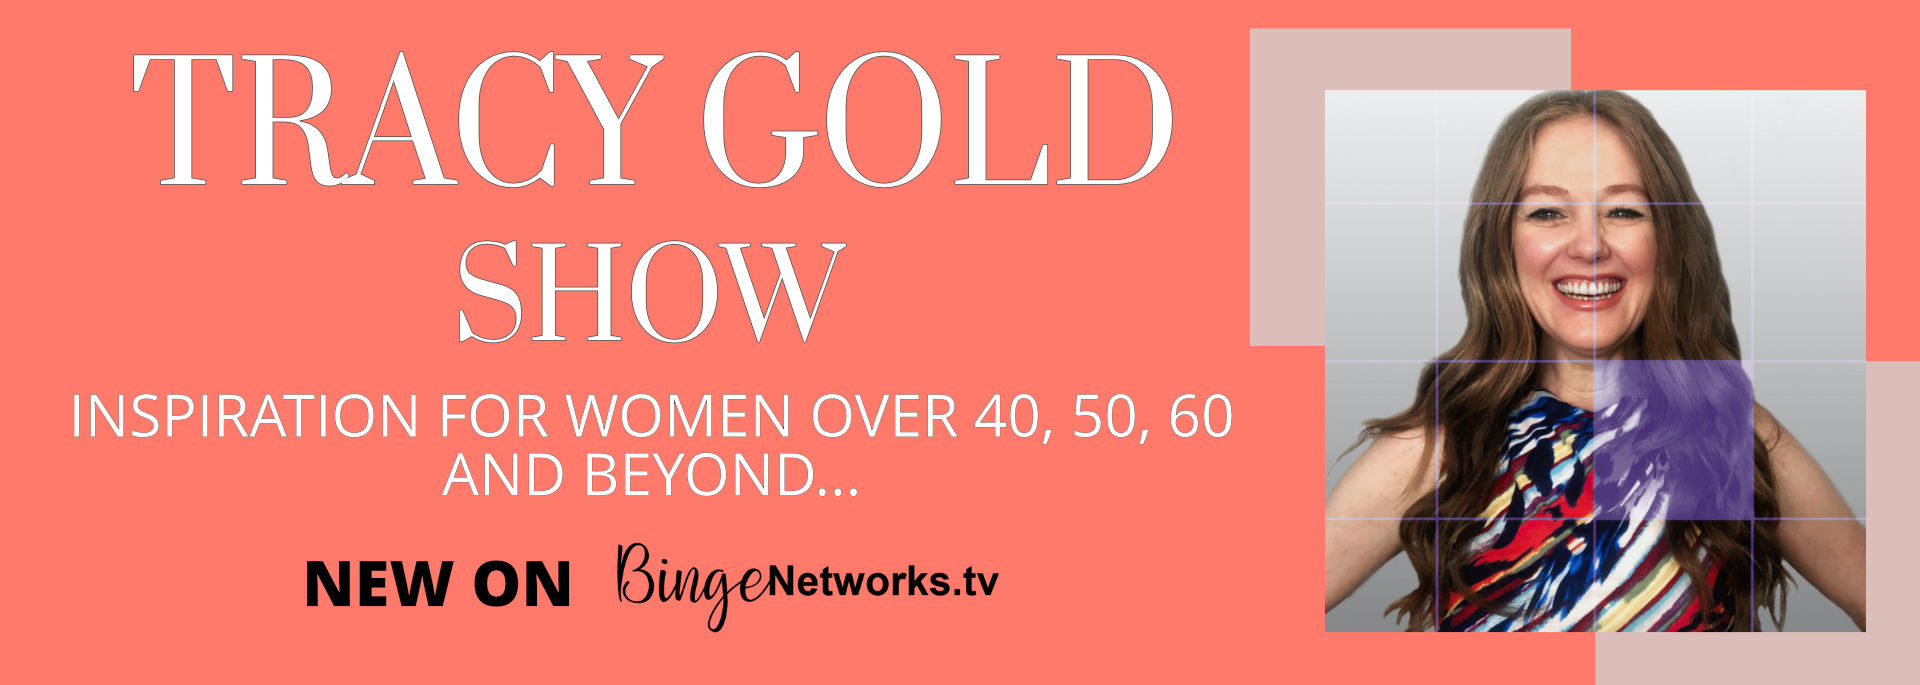 Tracy Gold Show